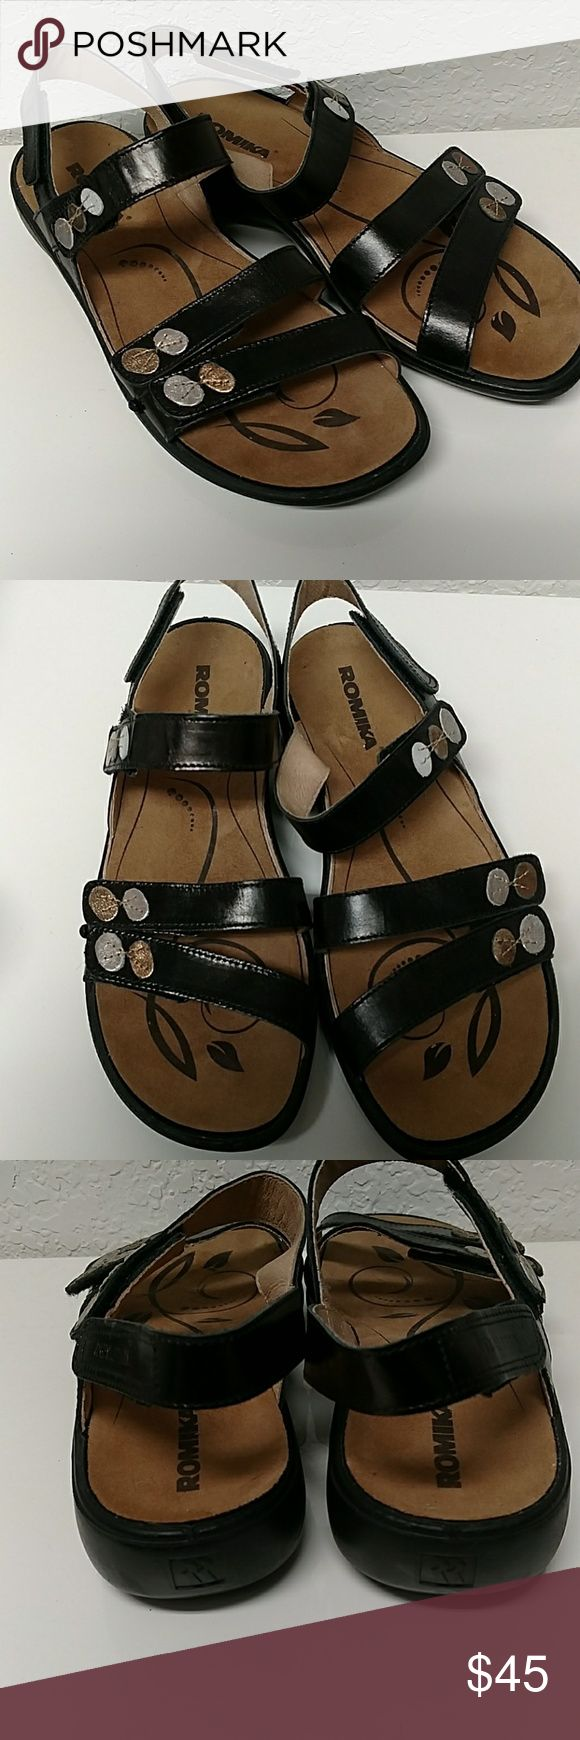 Romika Sandals Good used condition.  Velcro straps.   Black.  Well made and comfortable. Romika Shoes Sandals